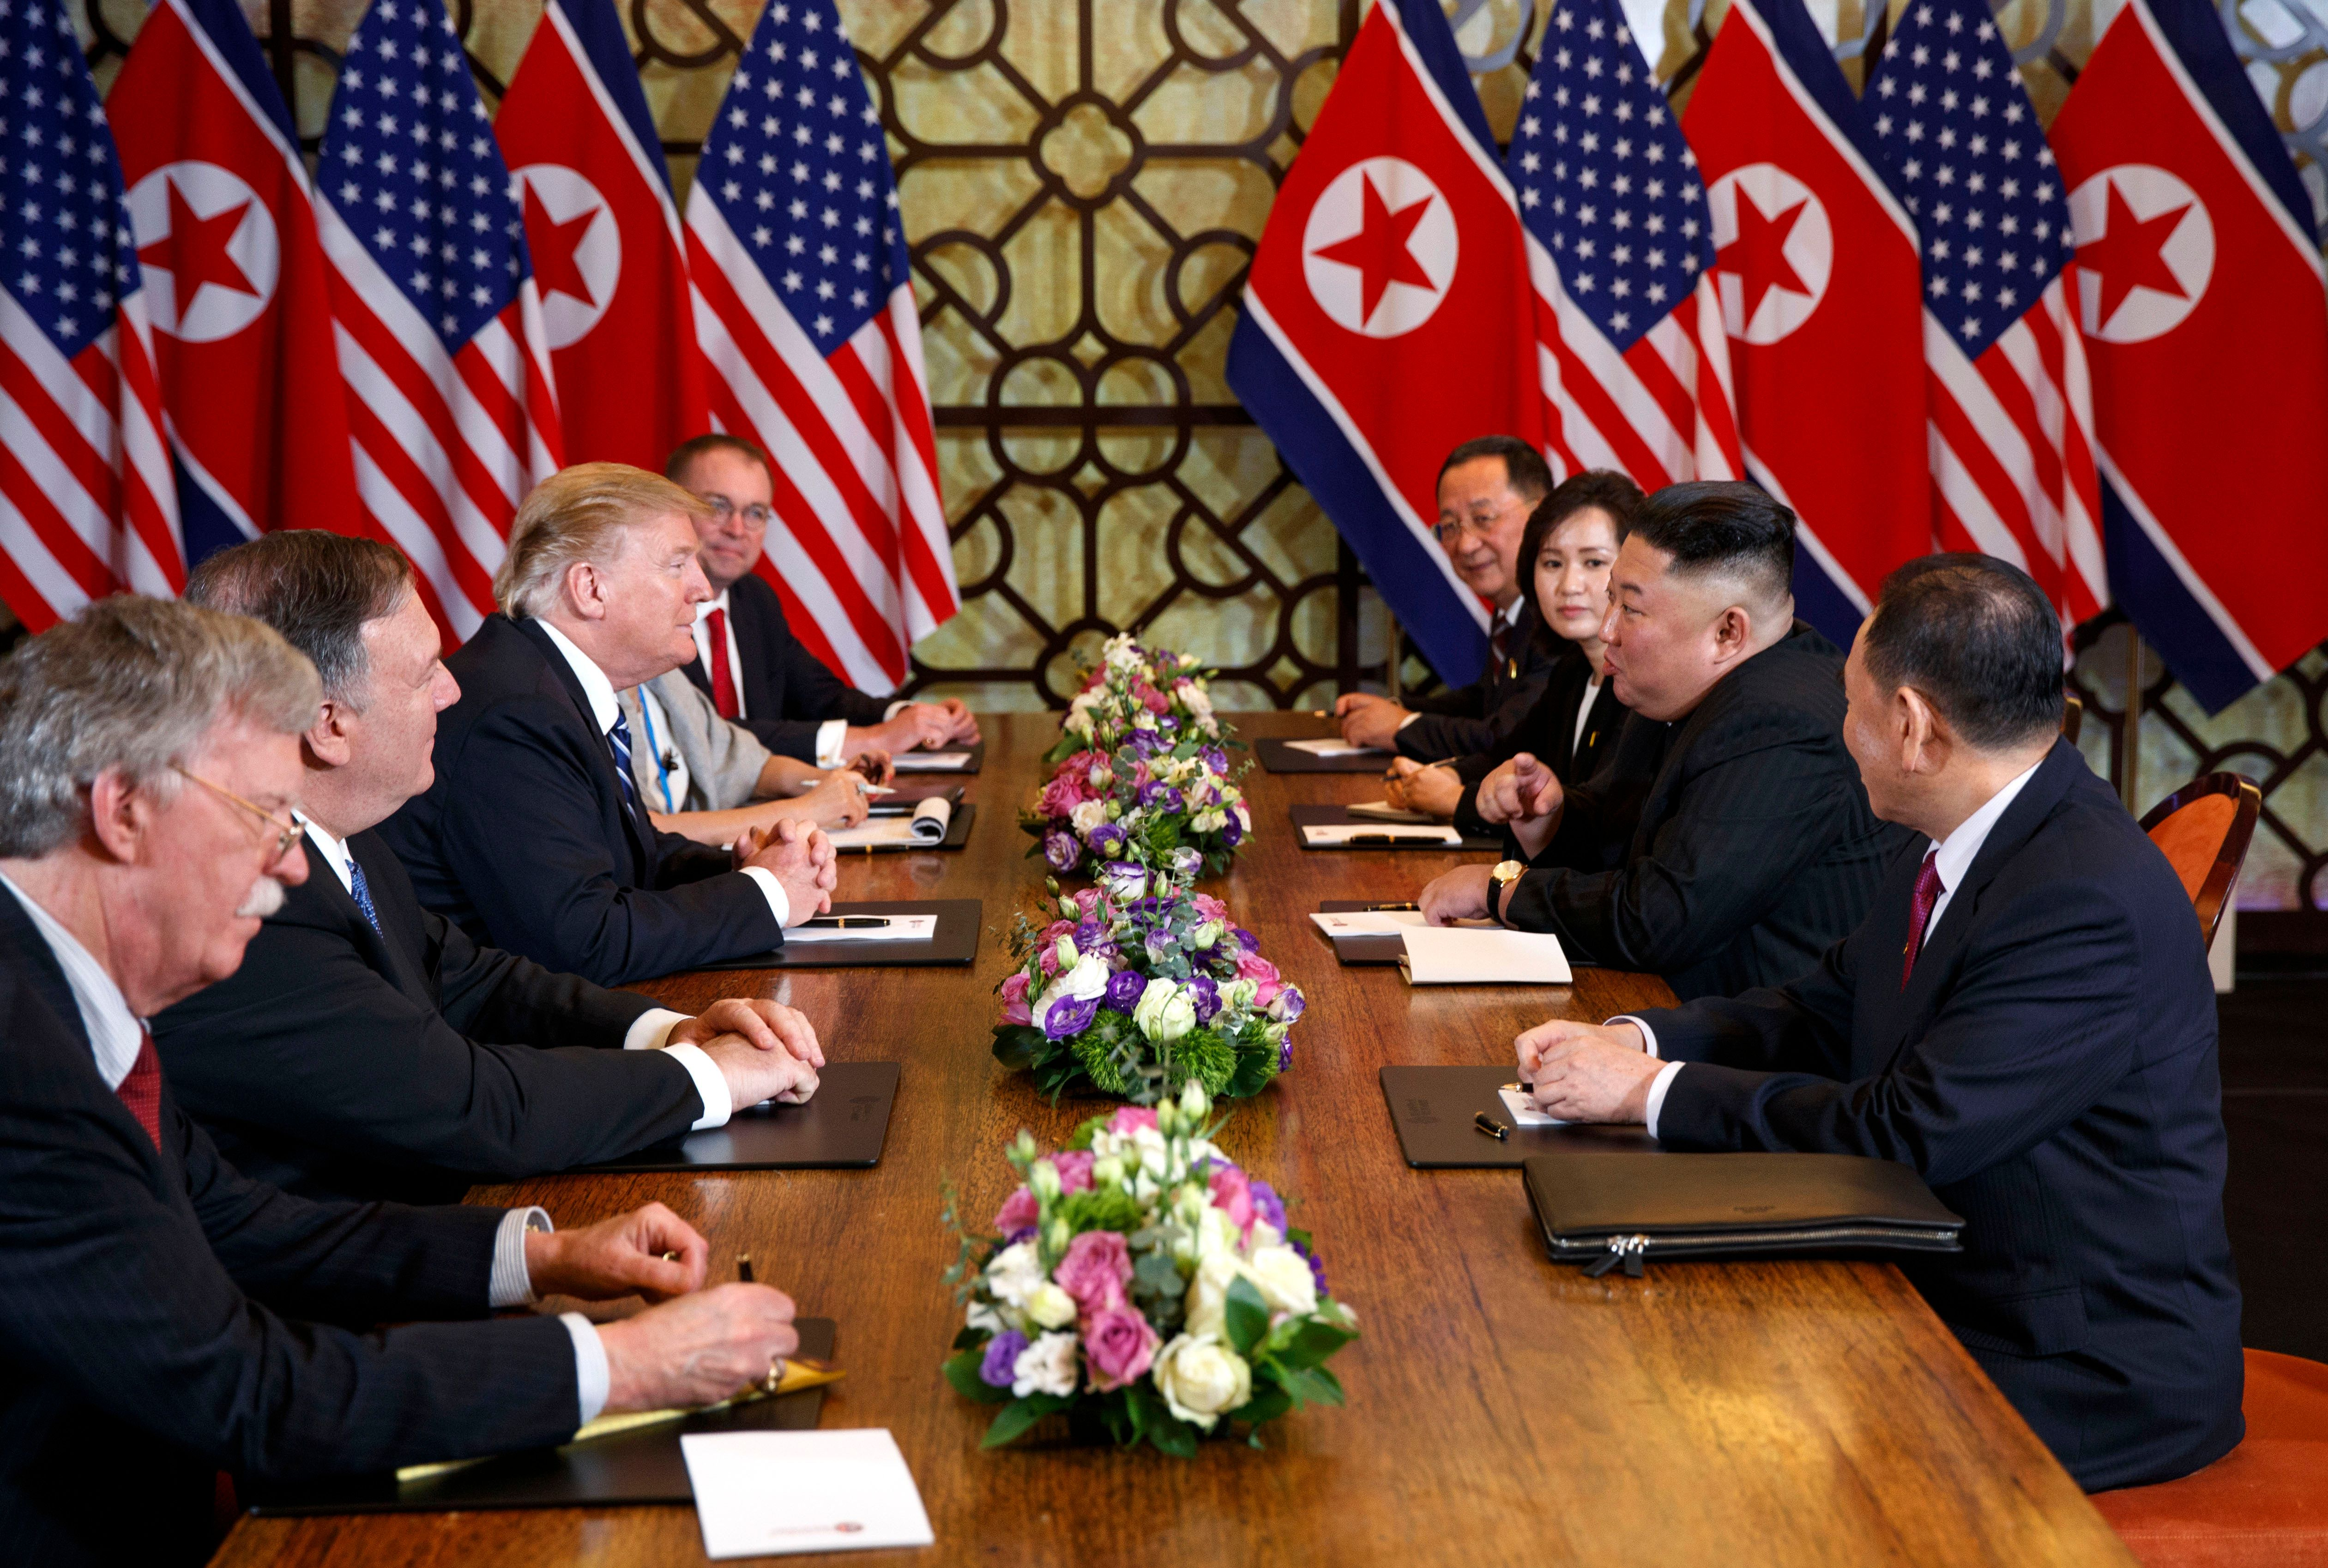 President Donald Trump, third from left, speaks with Secretary of State Mike Pompeo, second from left, during a meeting with